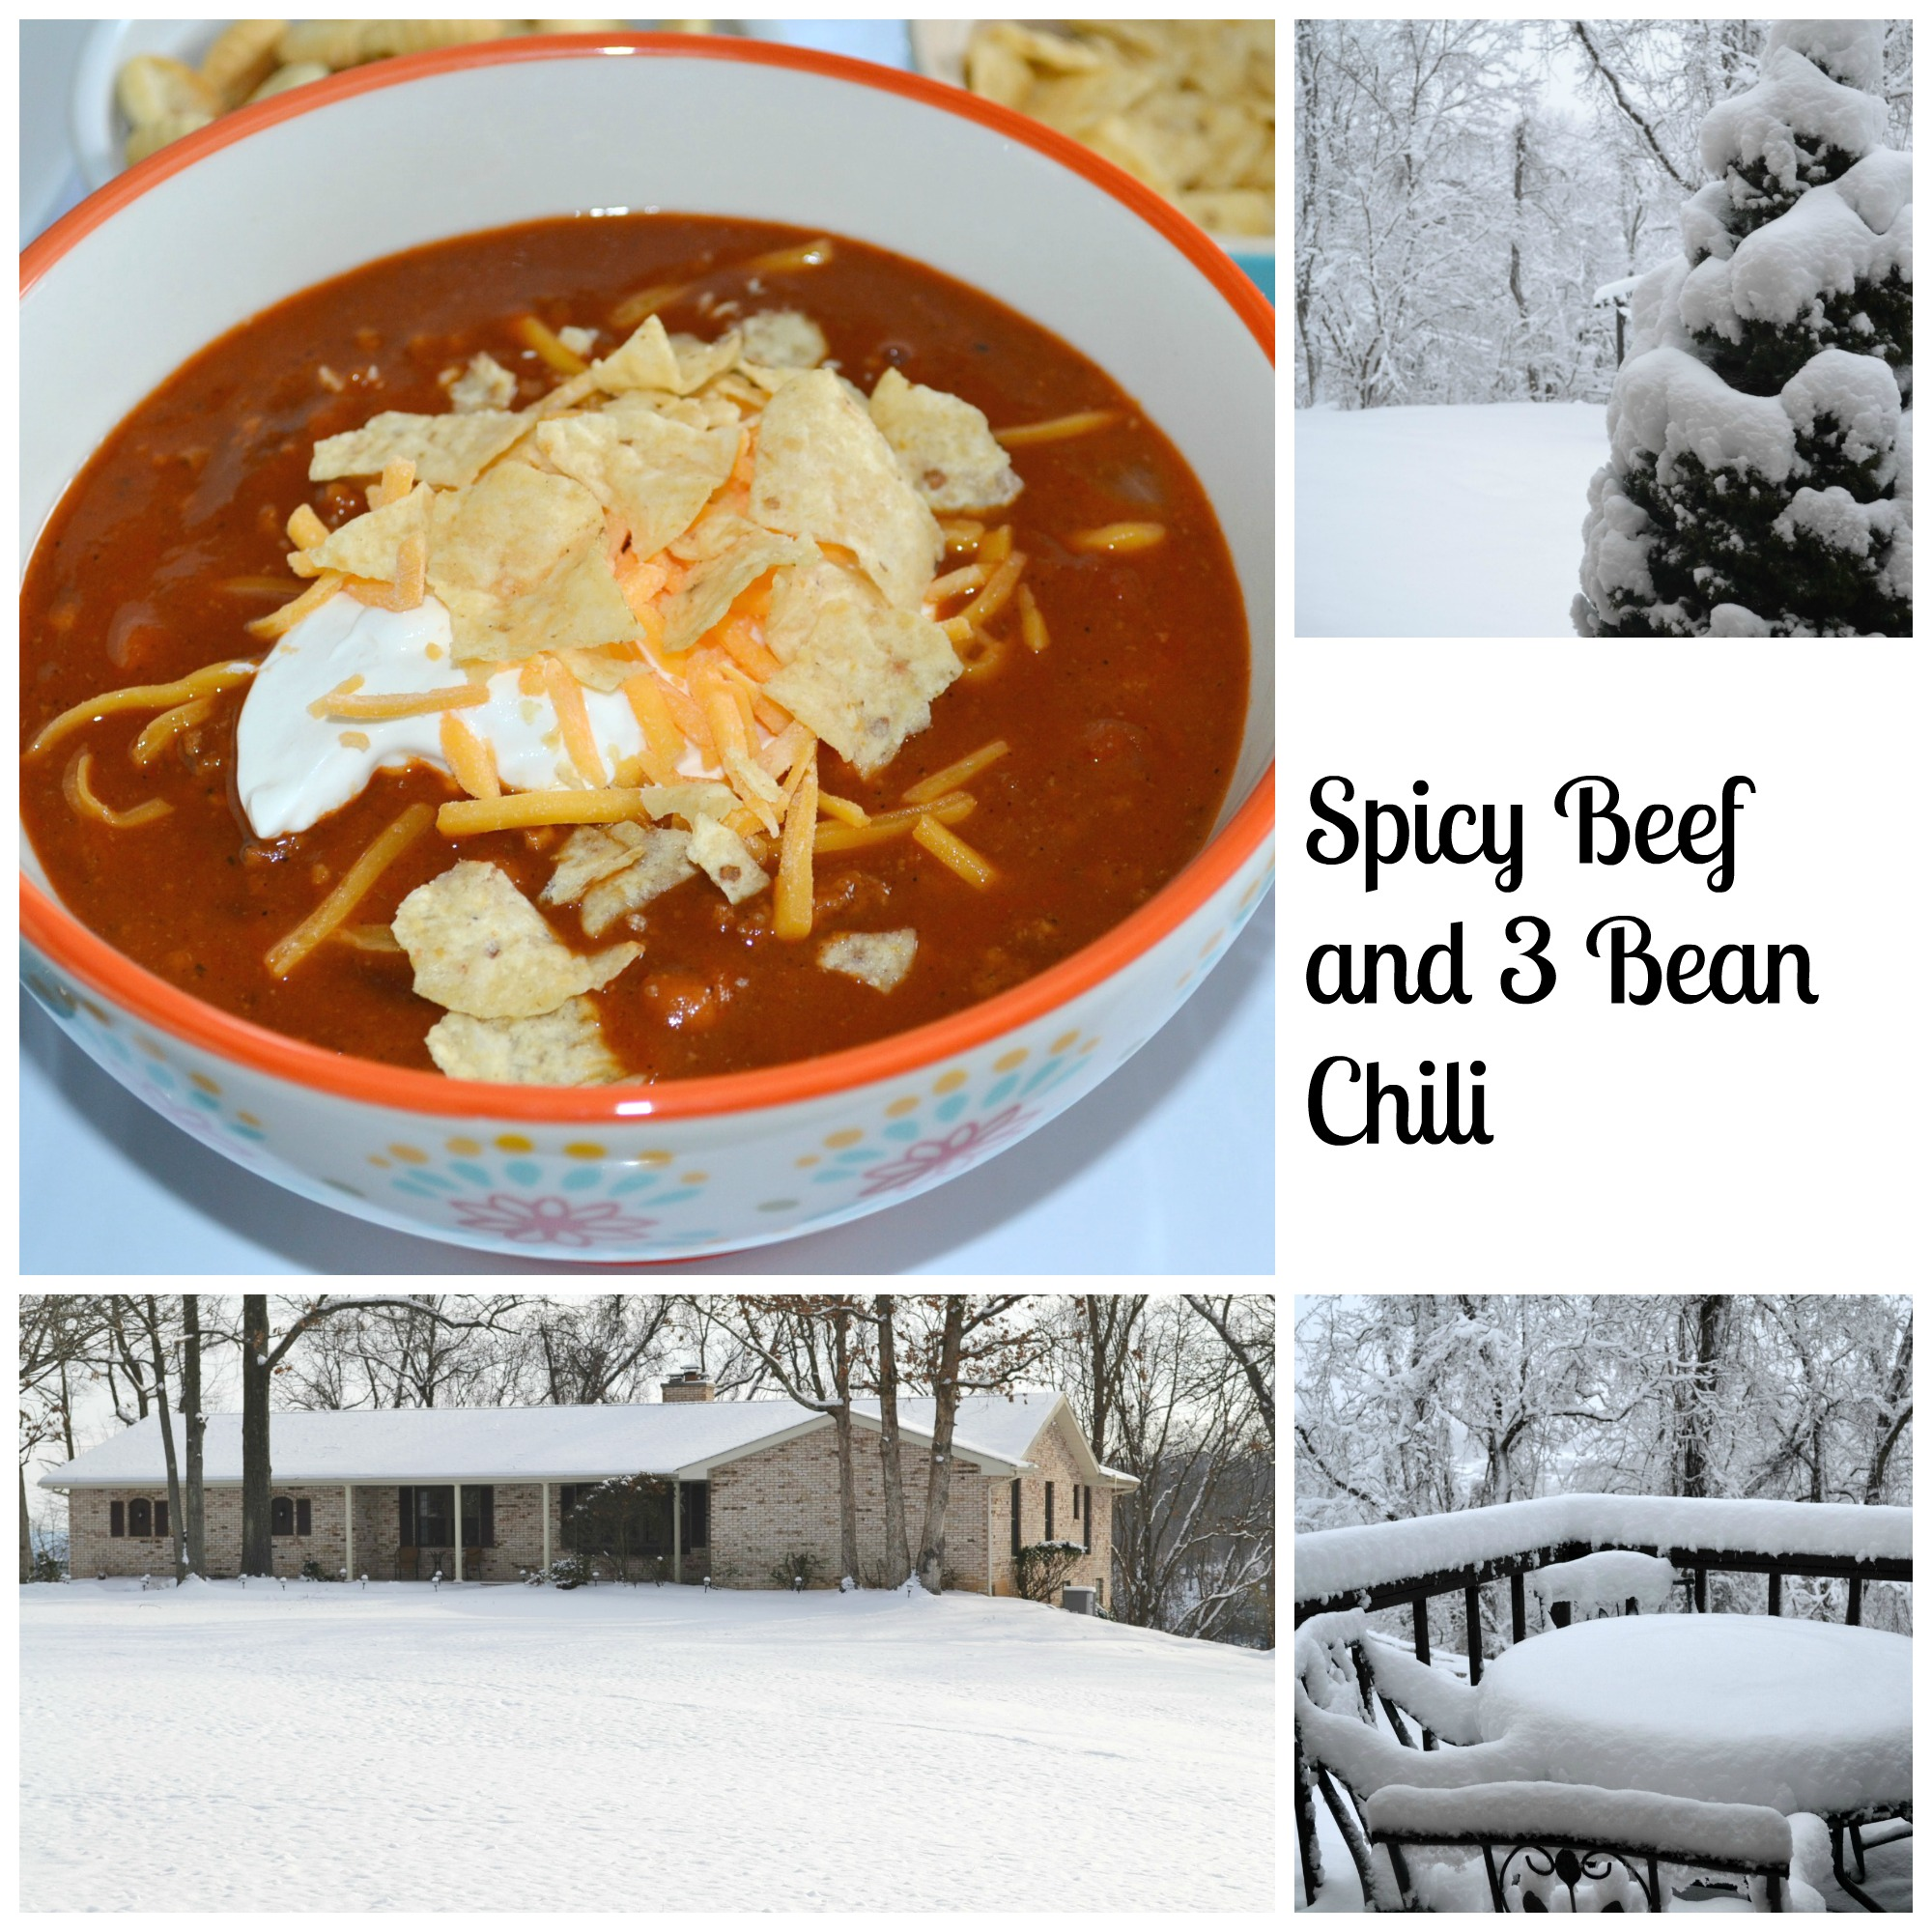 Recipe for homemade chili. Spicy Beef and 3 Bean Chili. Perfect for a cold, snowy day.